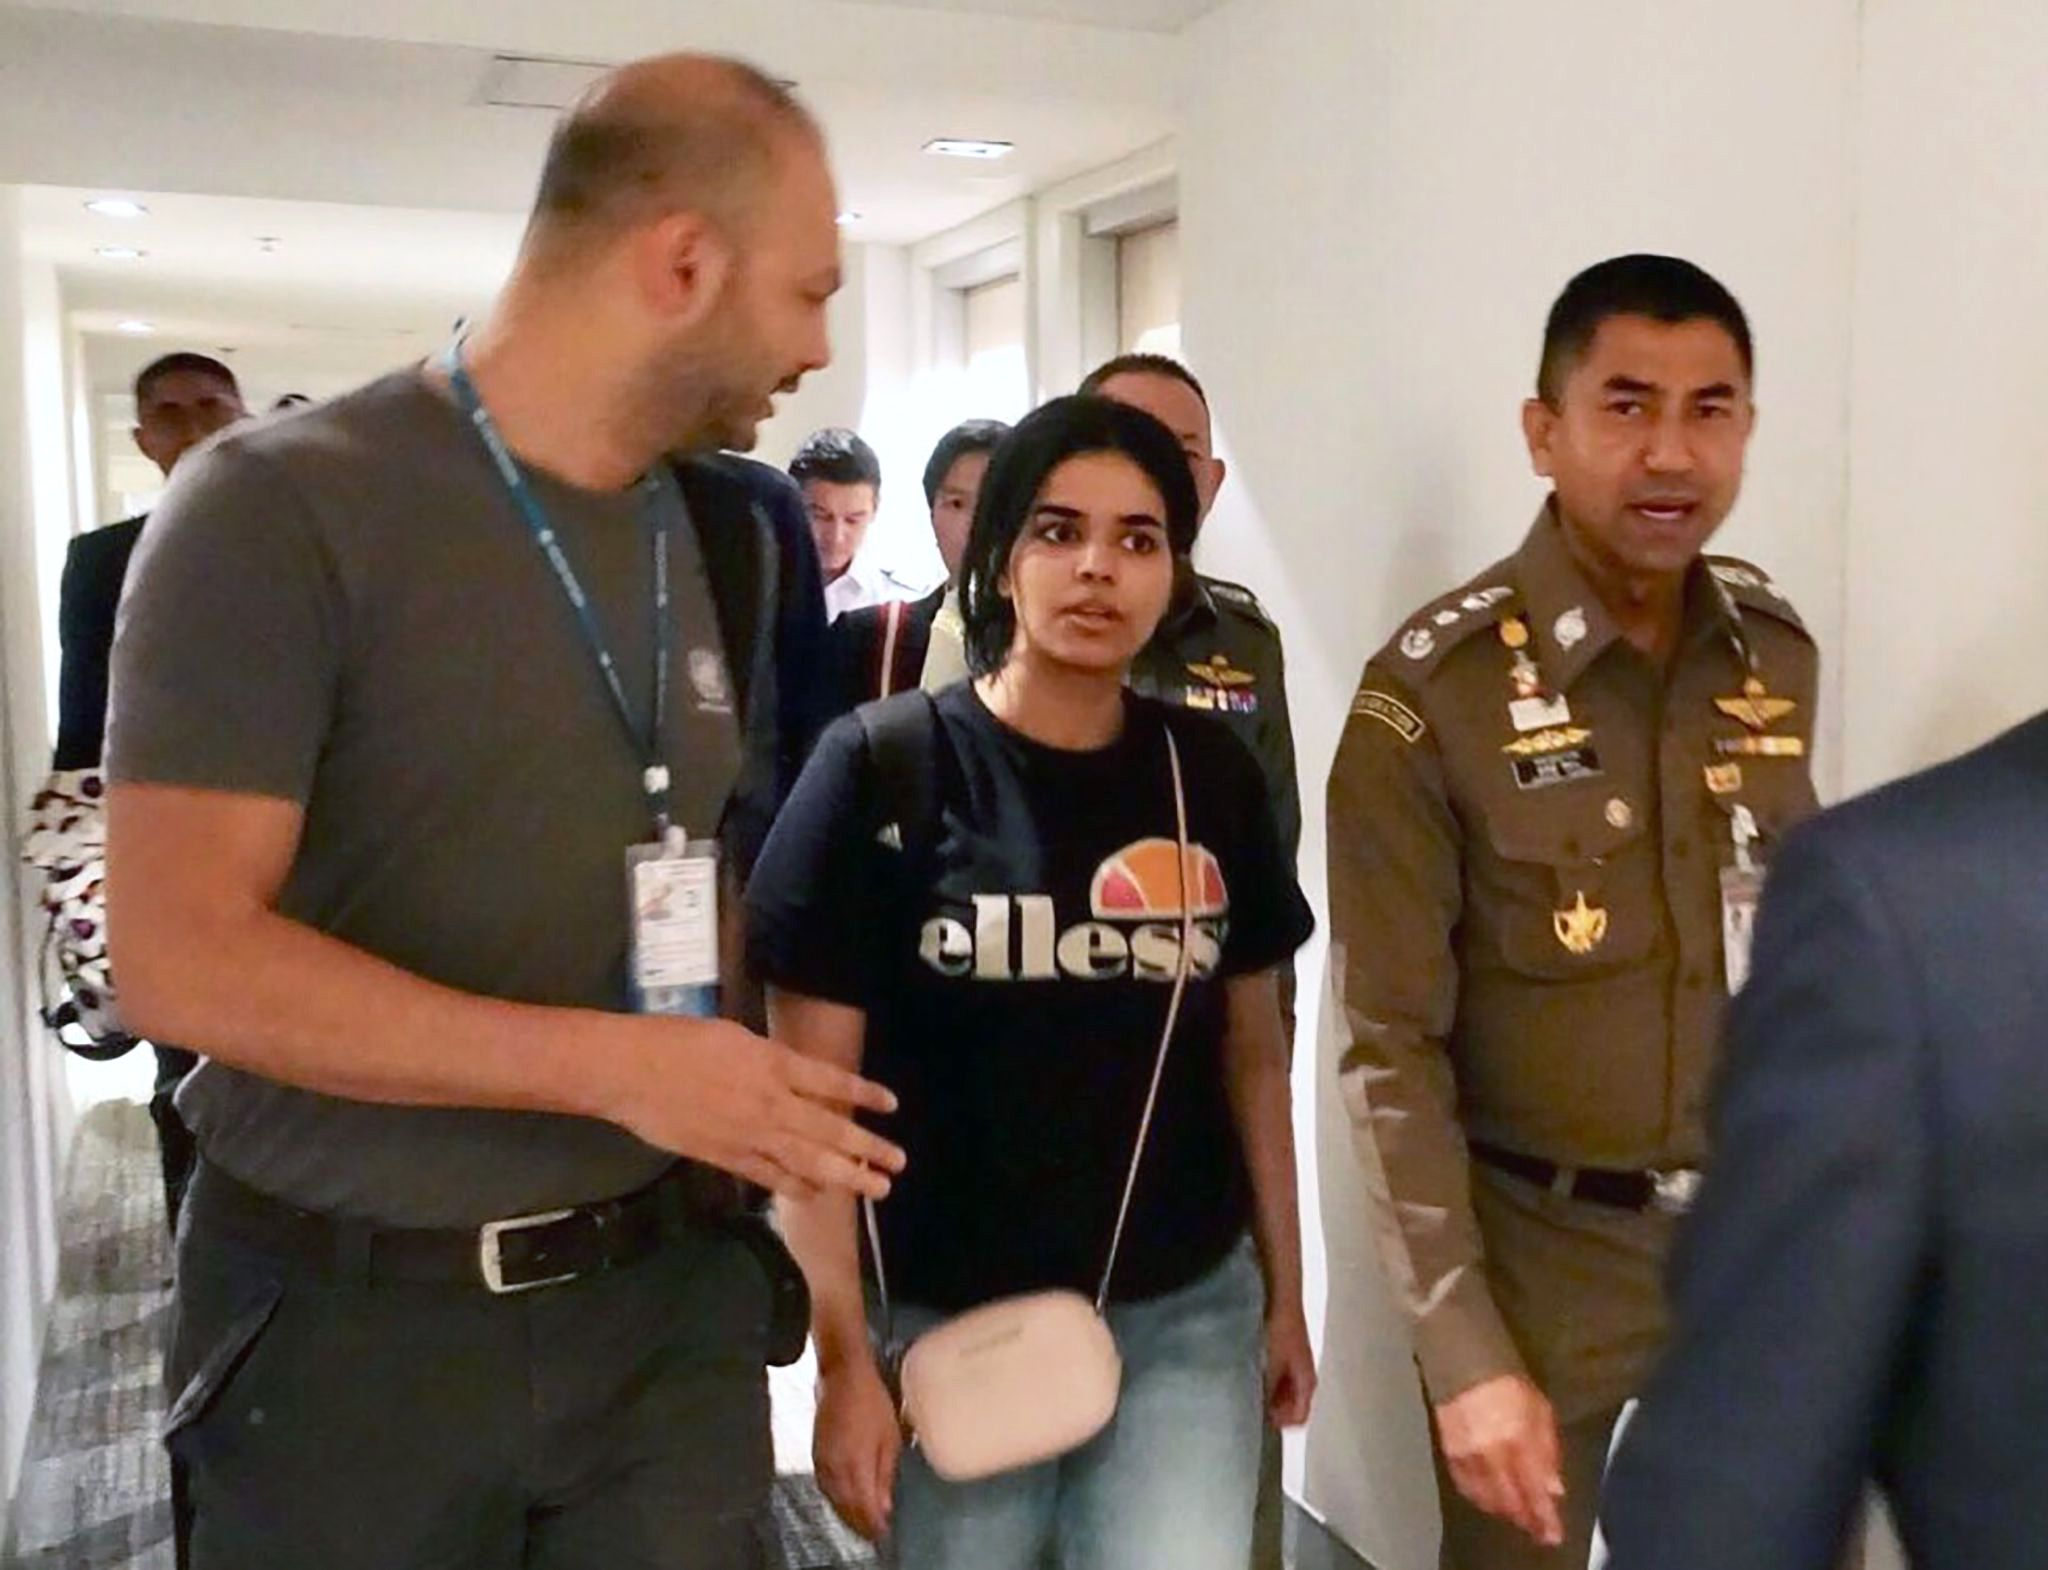 What to Know About Rahaf Mohammed al-Qunun, the Saudi Teen Fleeing Her Family